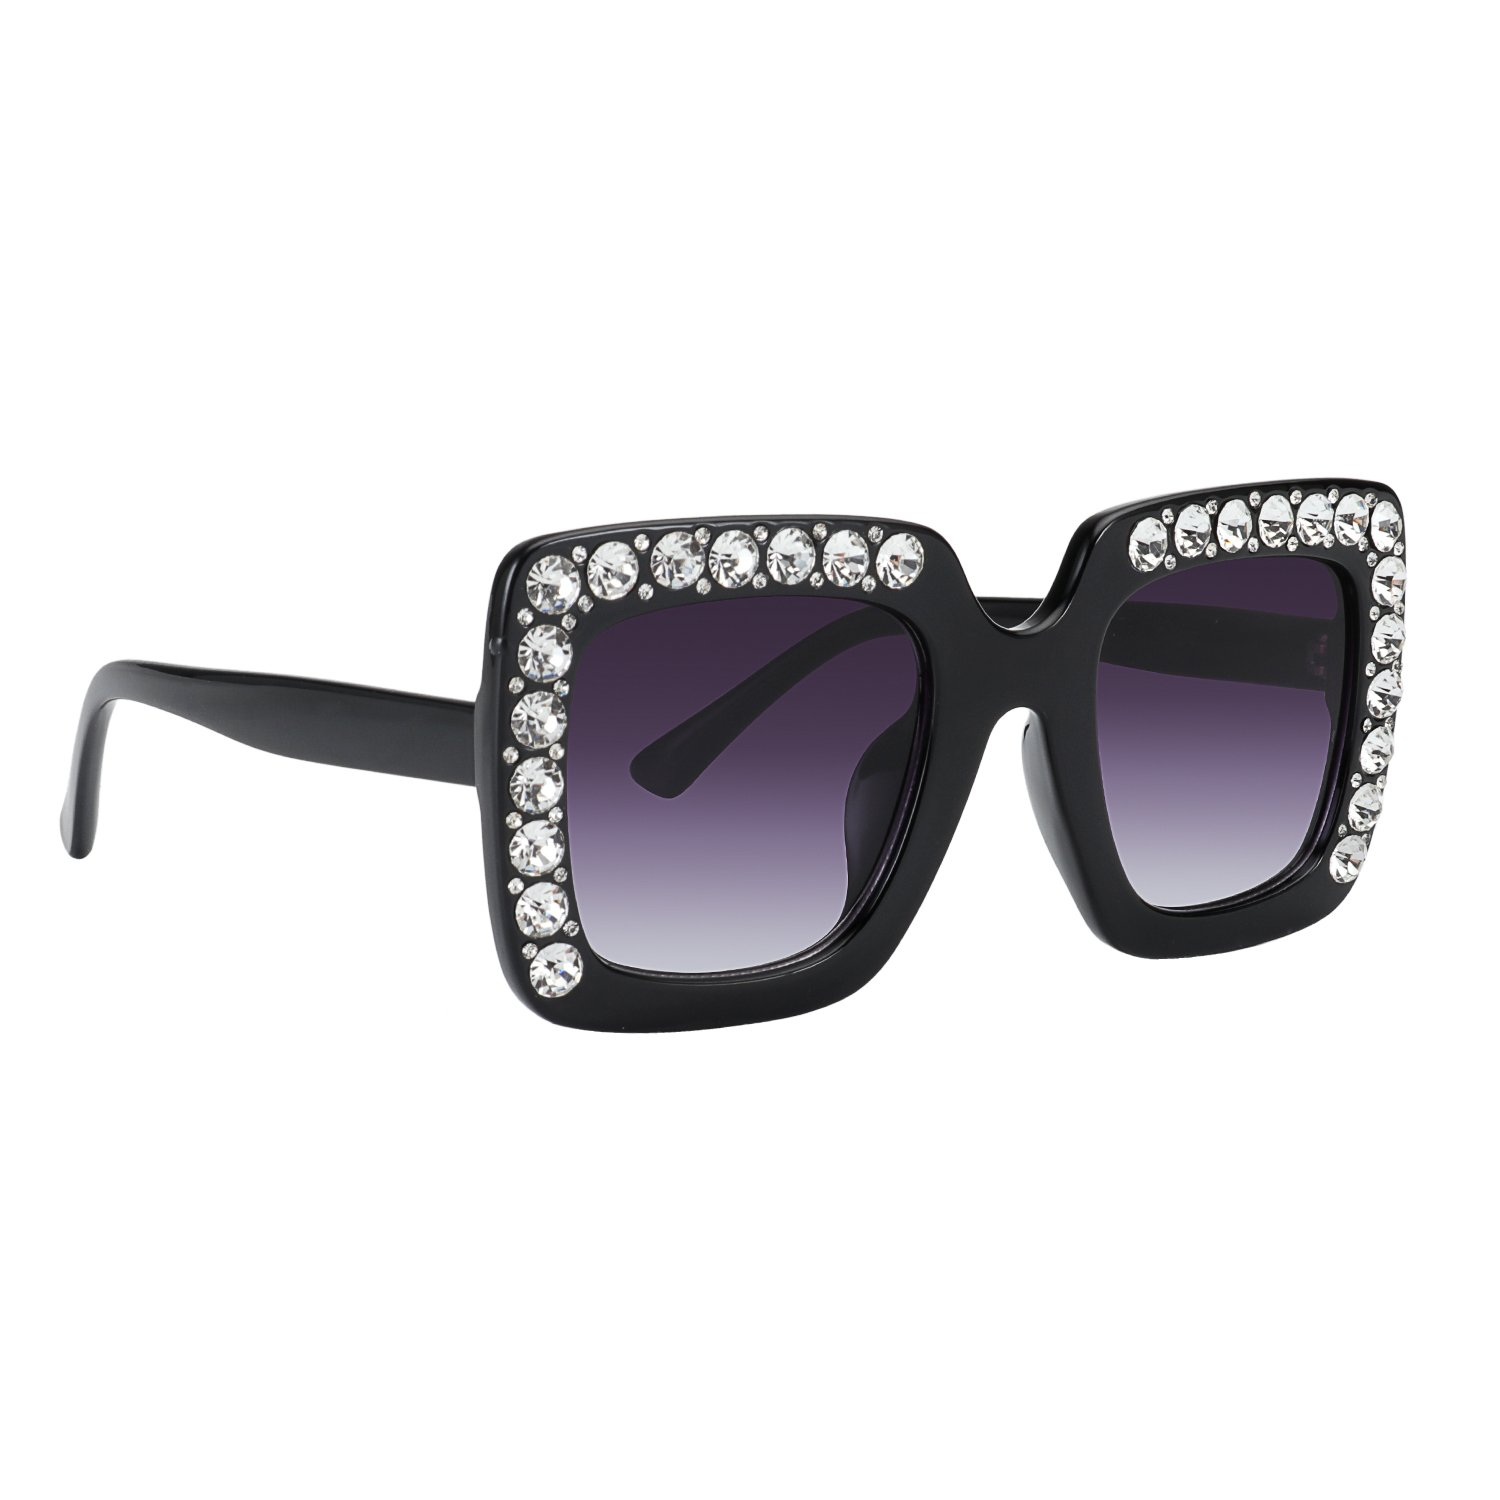 ROYAL GIRL Kids Childrens Crystal Sunglasses For Girls Rhinestone Square Shades (Black)